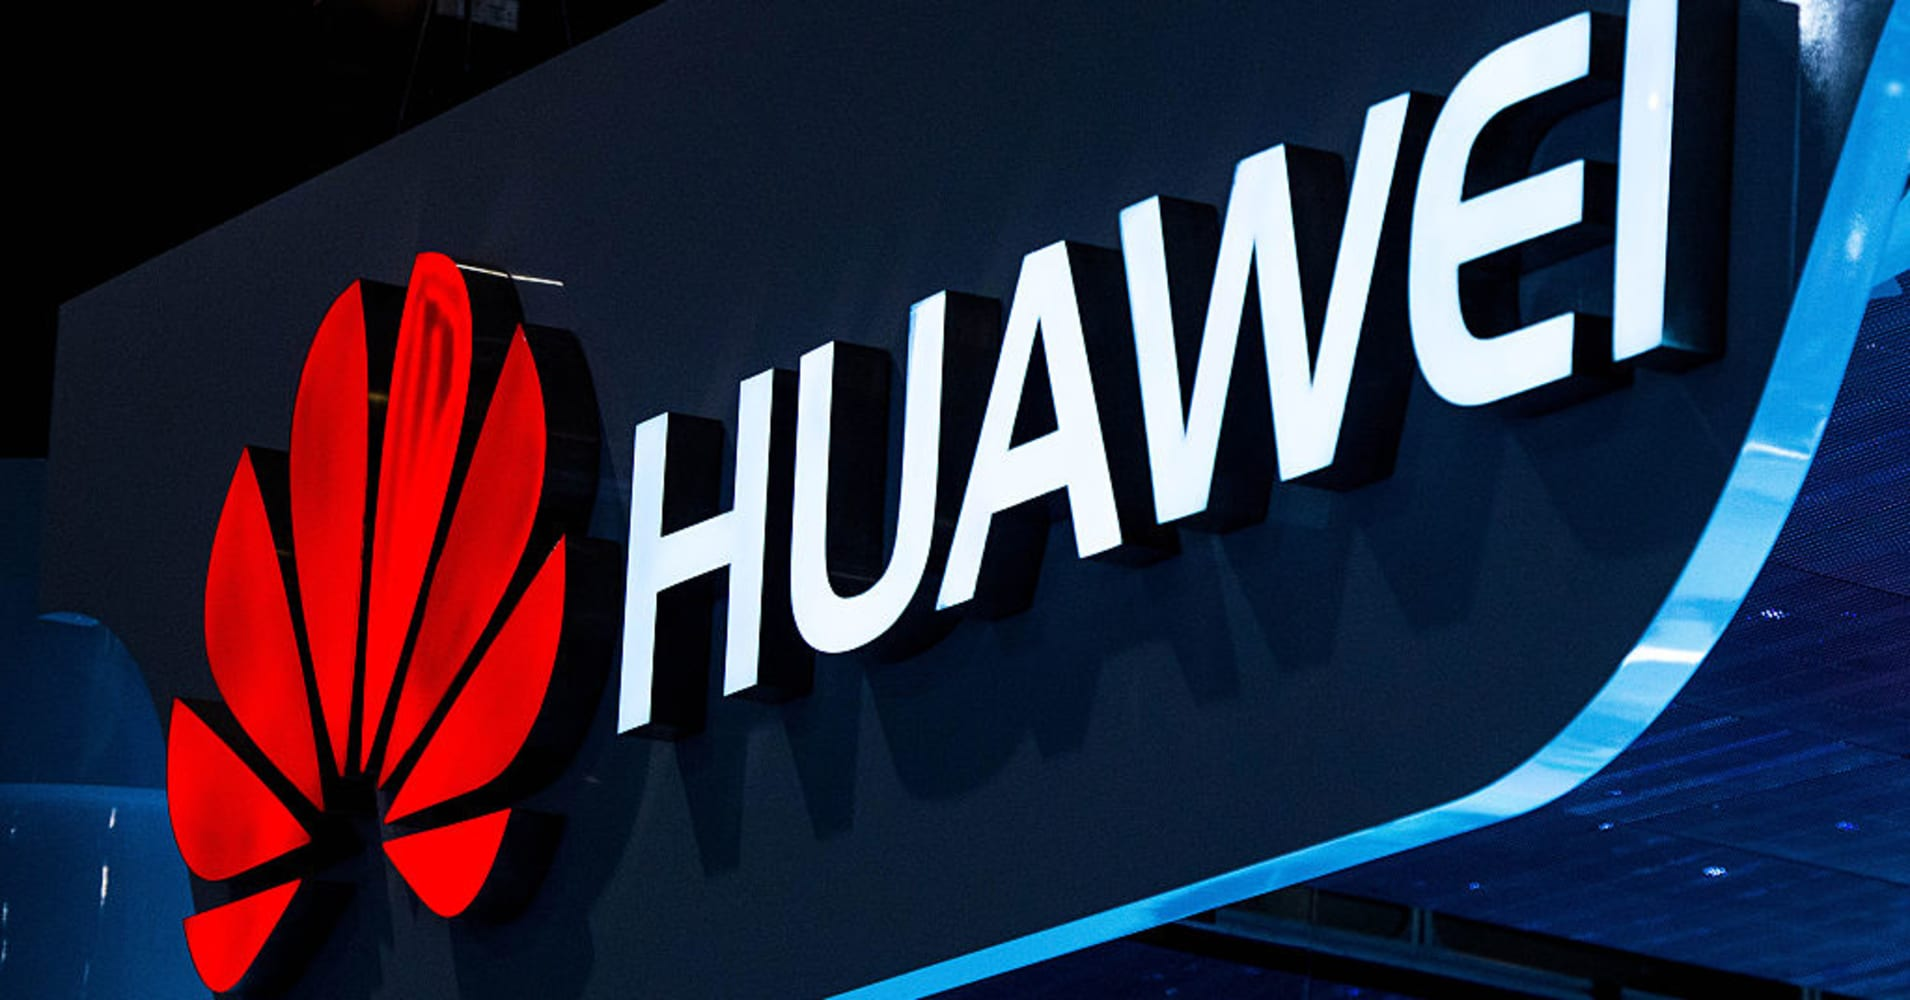 Image result for Huawei, photos, corporate logo